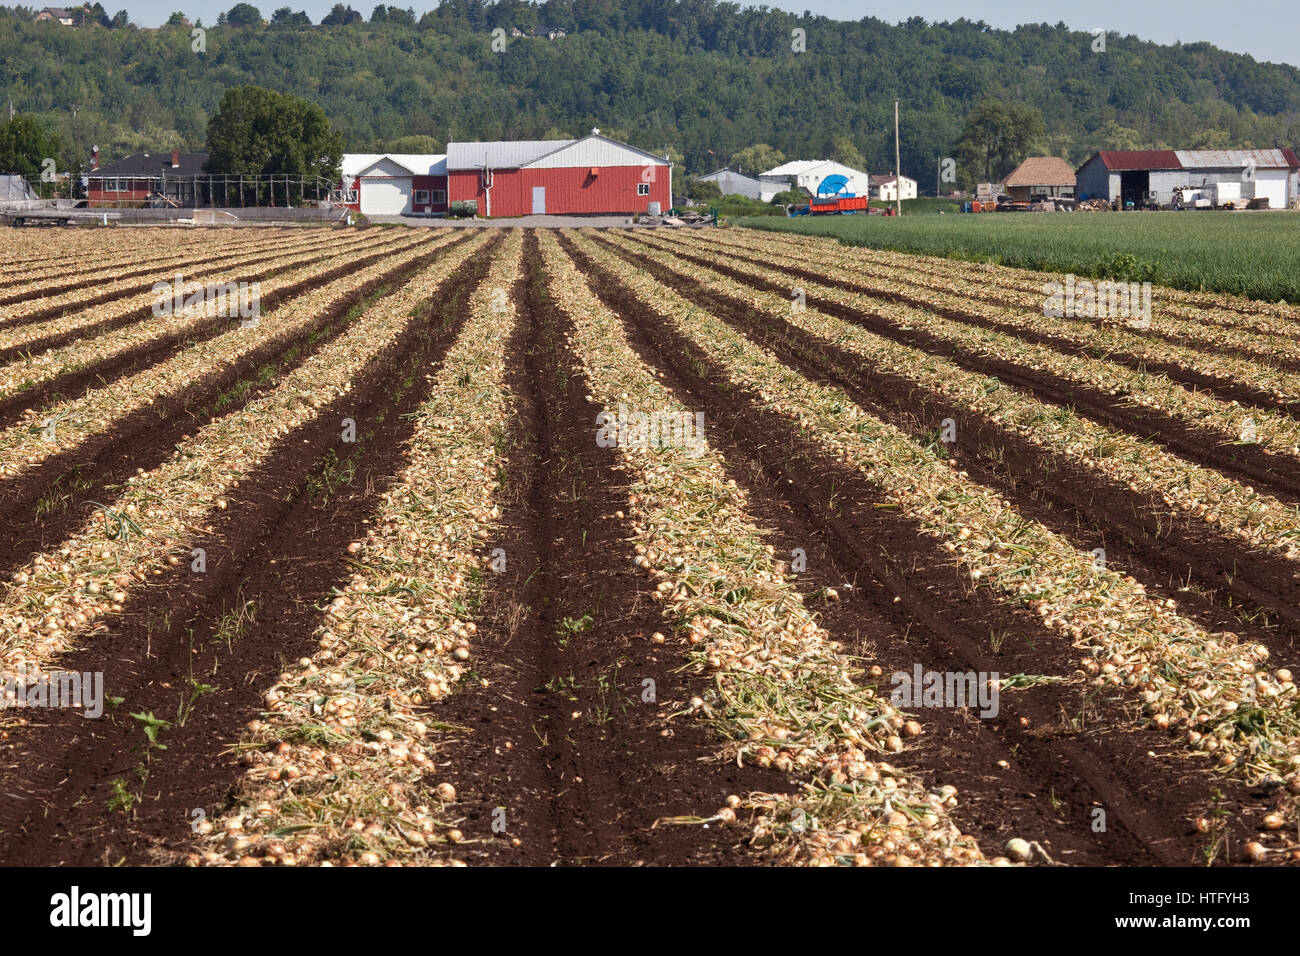 Ontario,Canada, Commercial farming of vegetables at Holland March near Brantford,Ontario - Stock Image